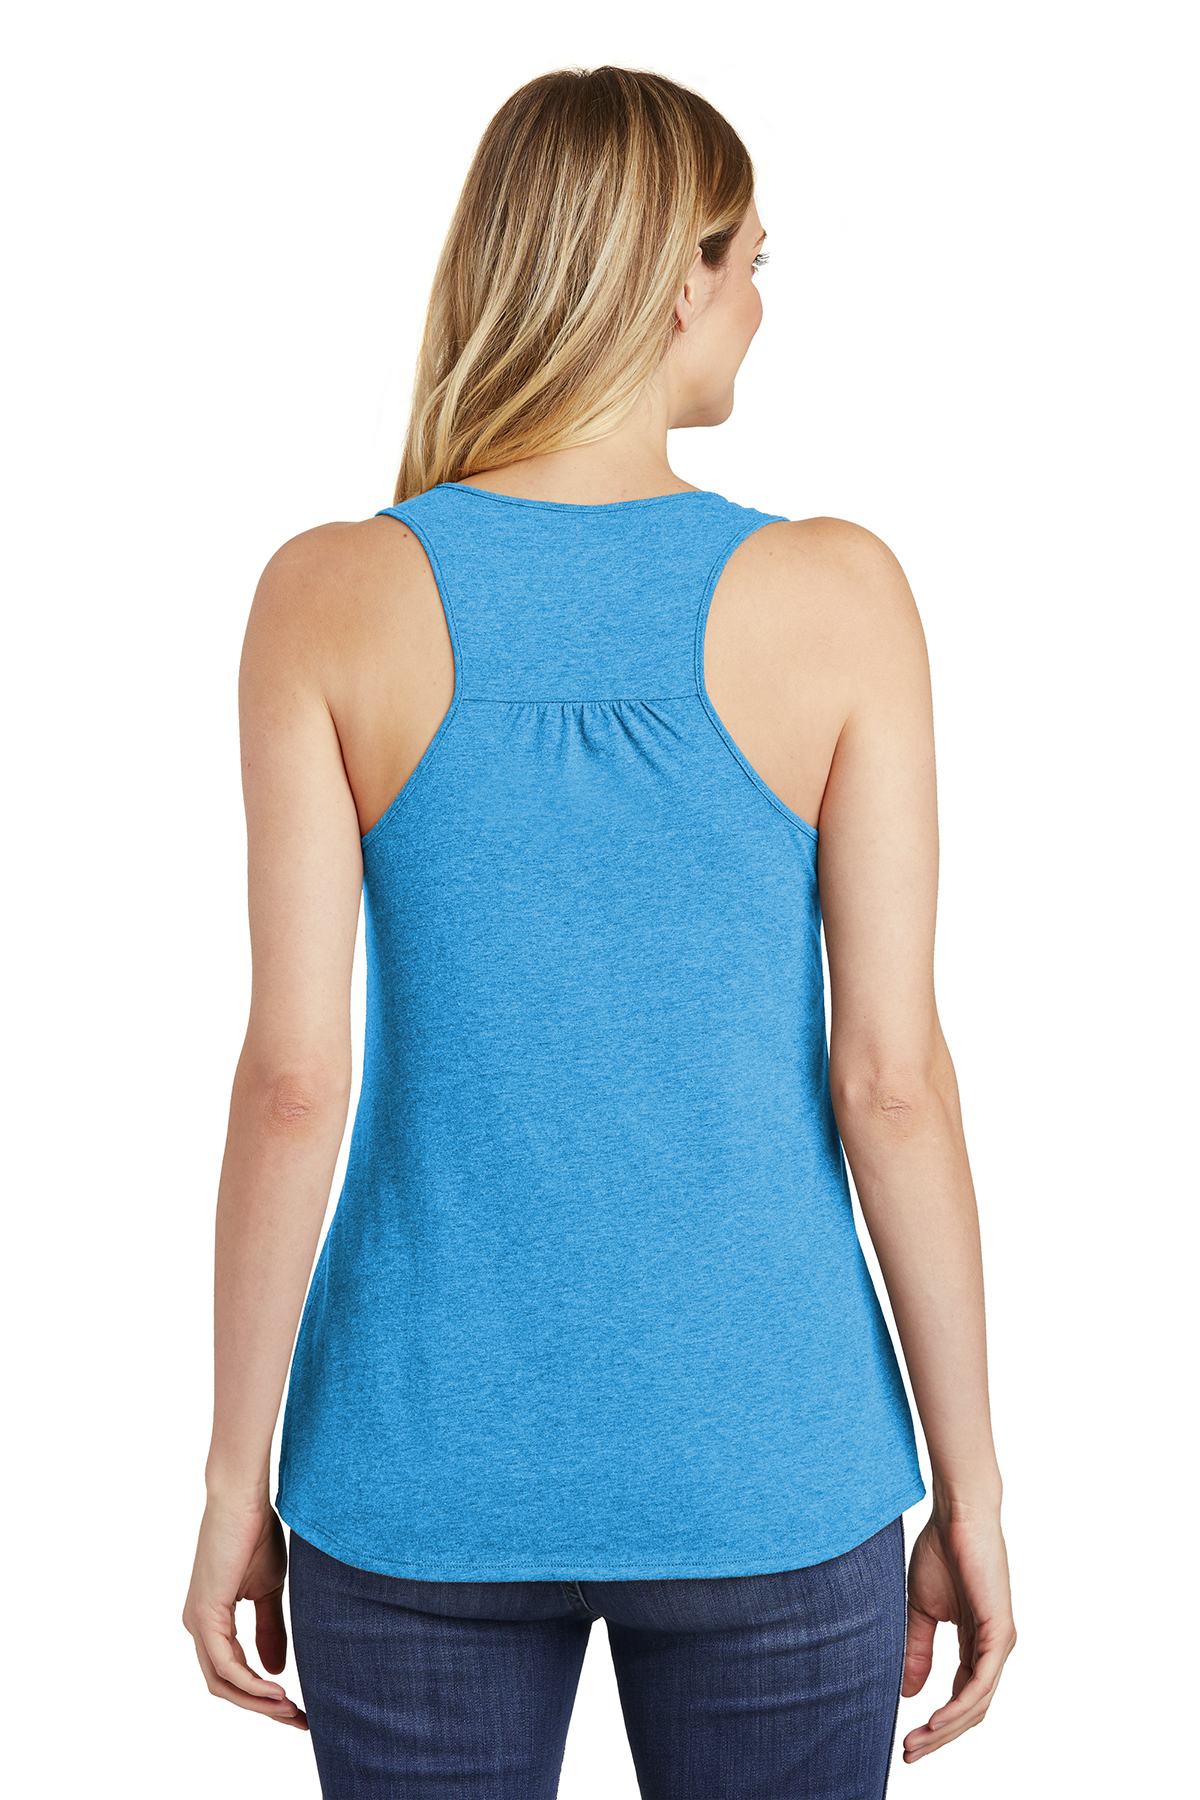 Grey Frost and Classic Red White Heathered Bright Turquoise Deep Royal Black District Tank DT6302 New Navy